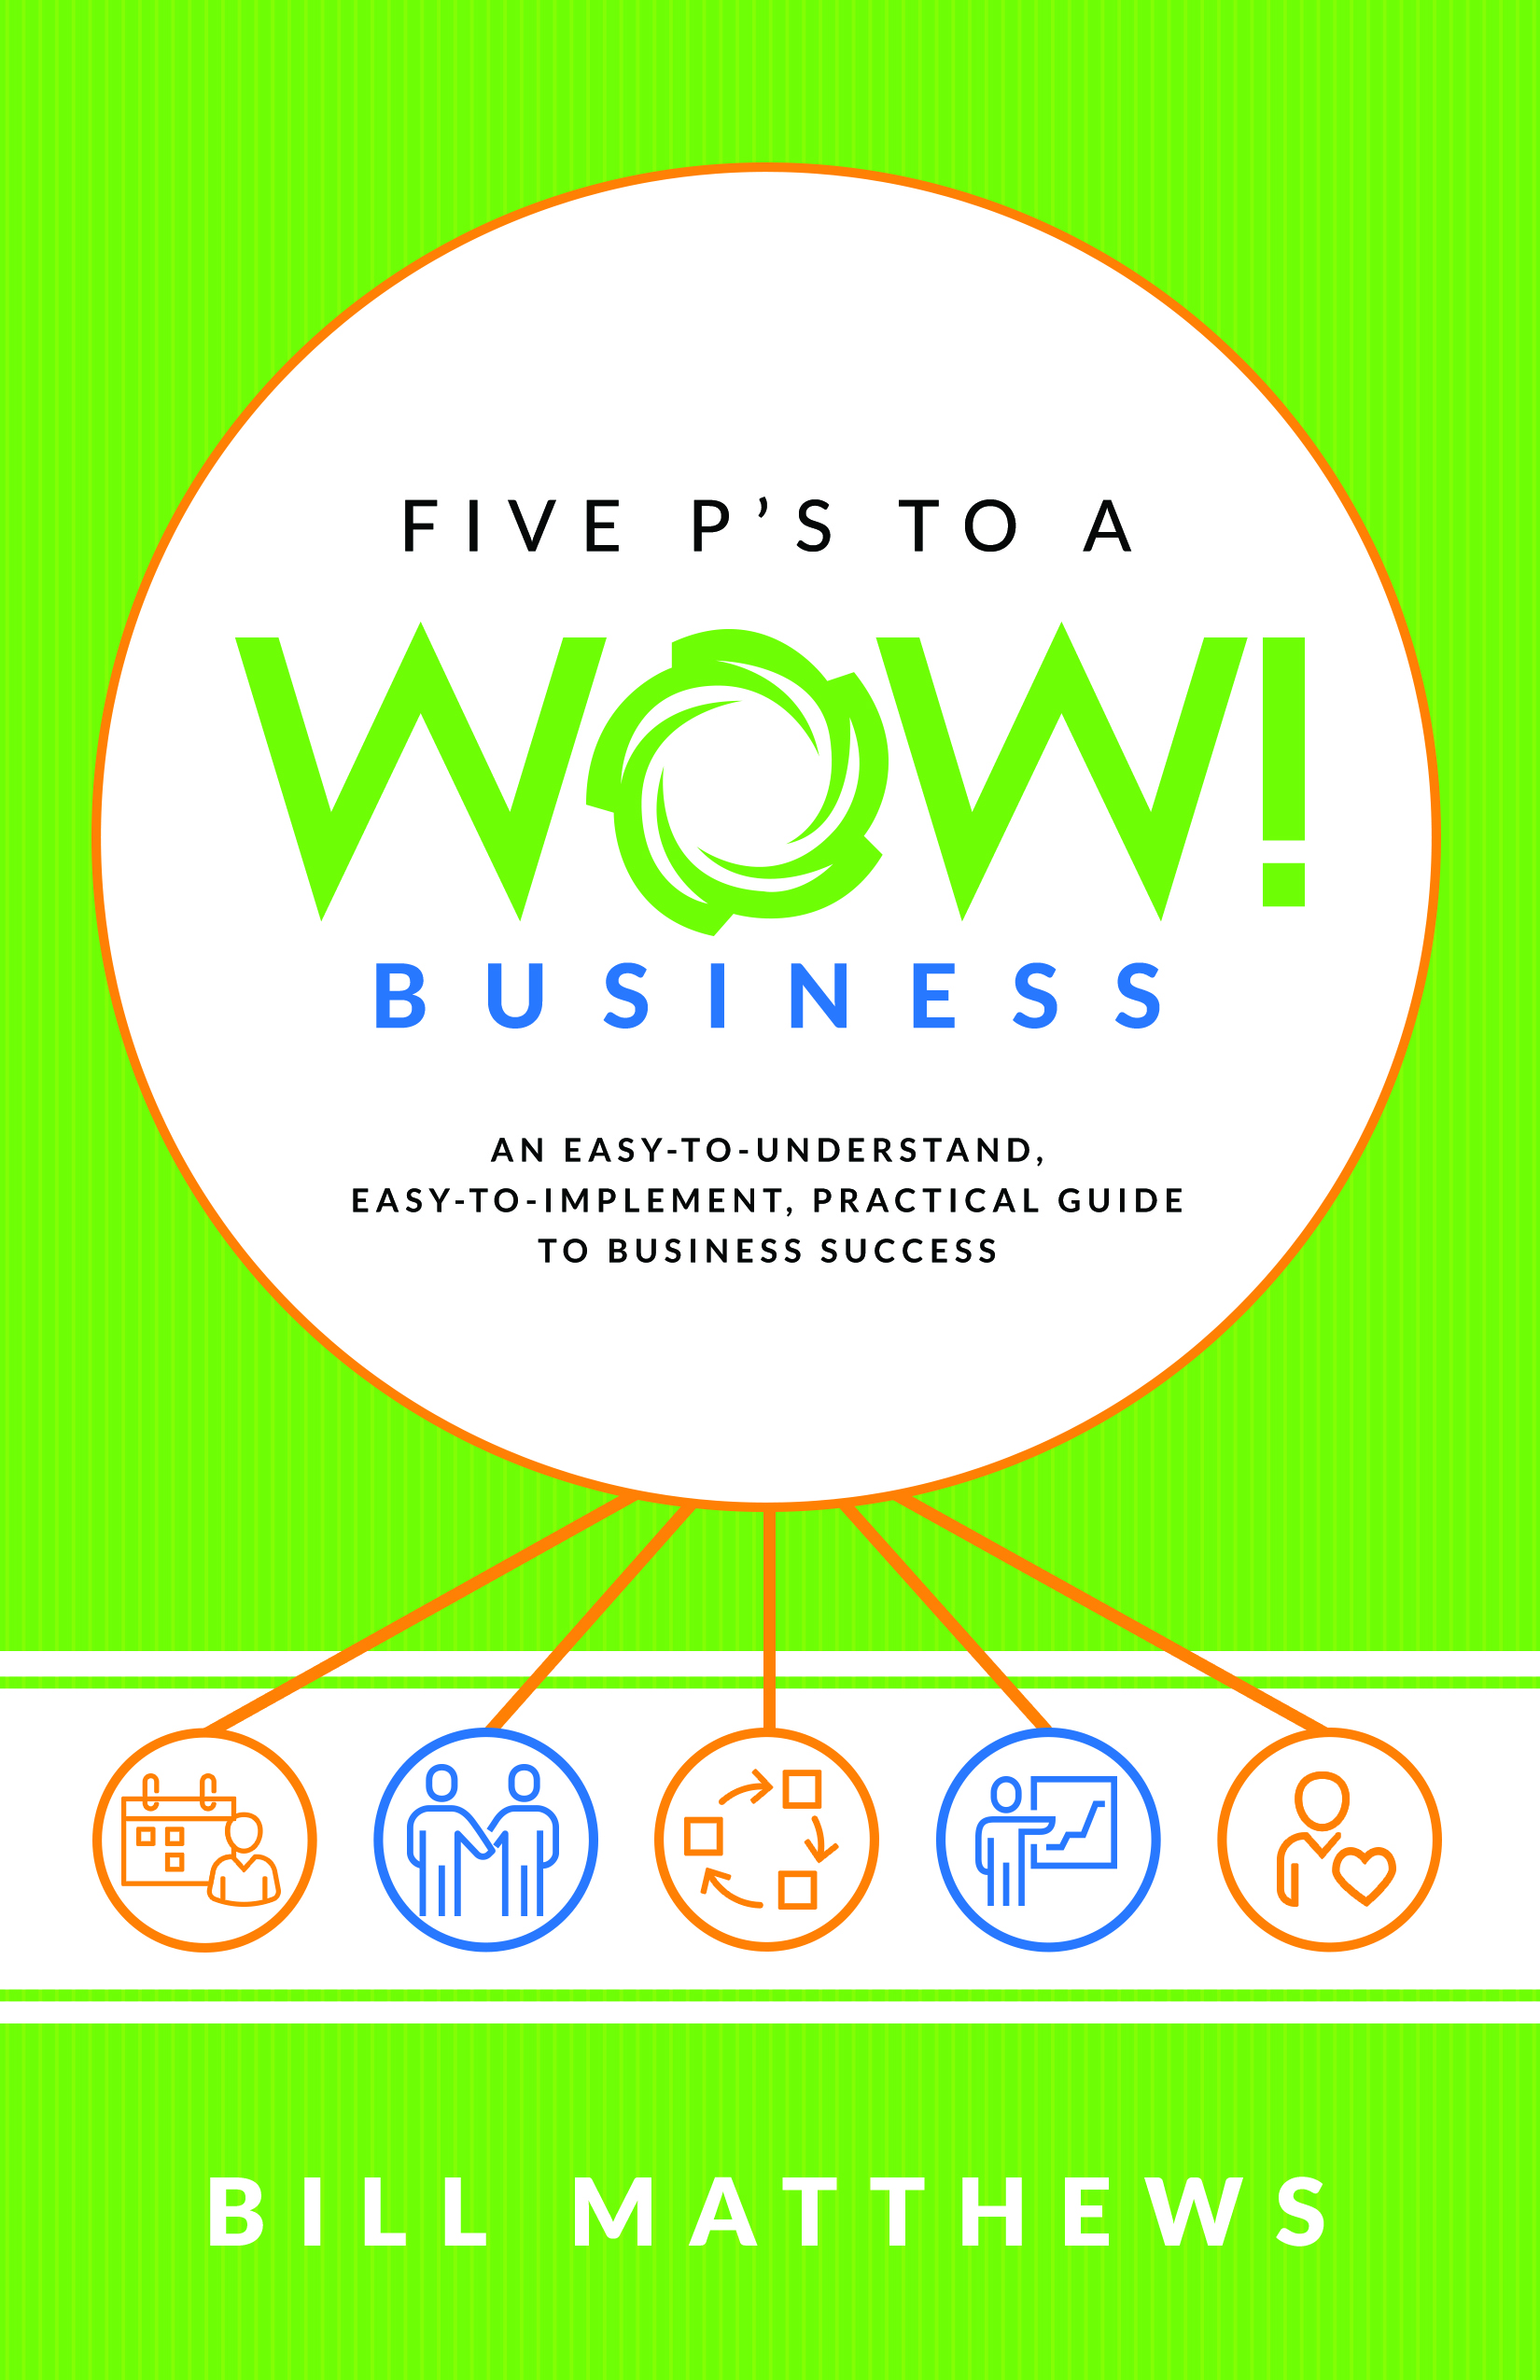 Five P's to a WOW! Business - Bill Matthews